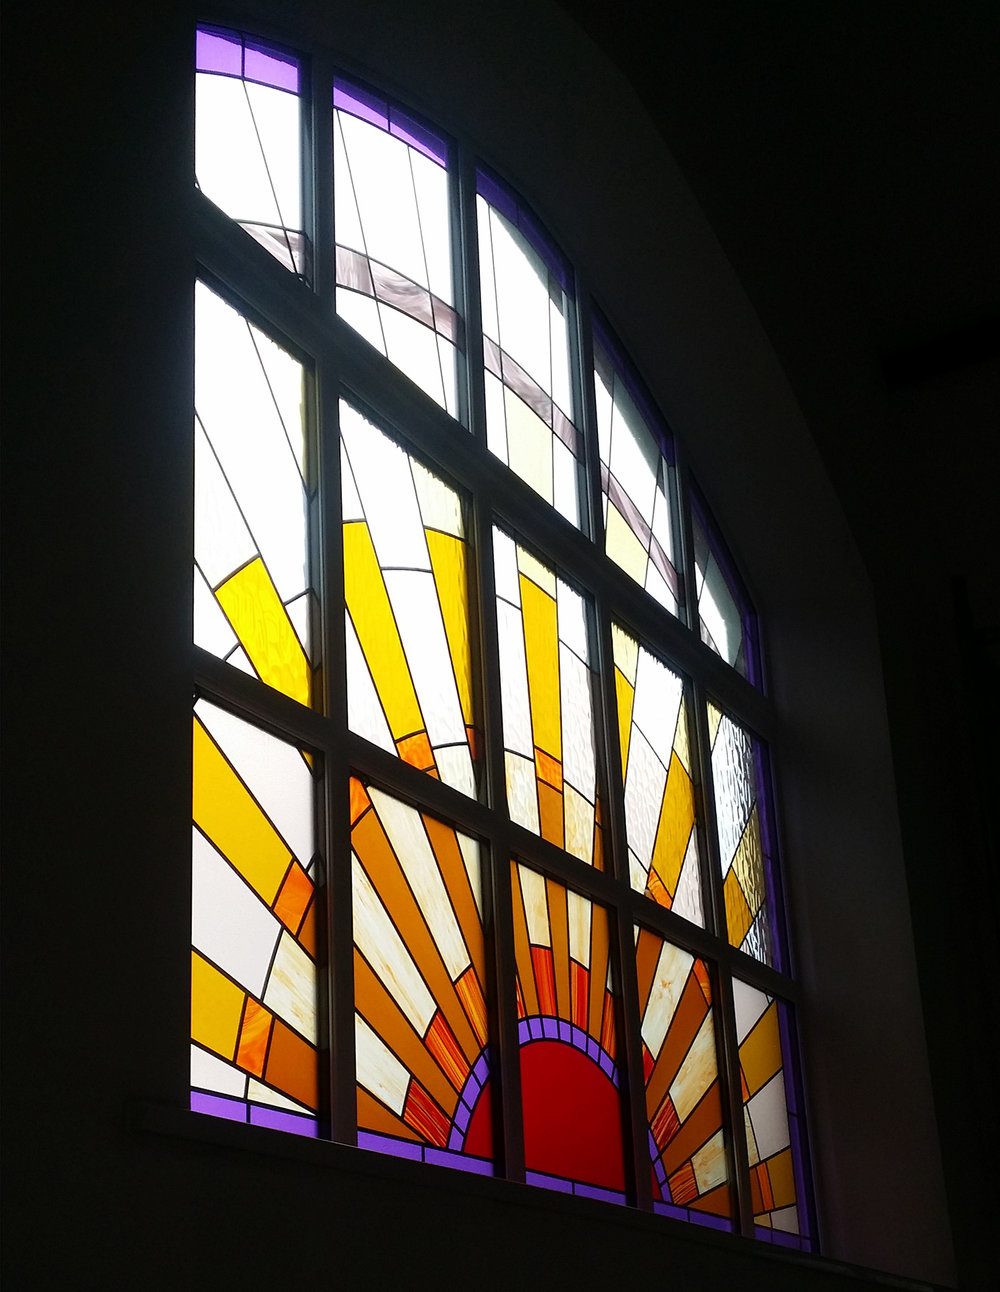 Large Sunburst Window in Chapel Conversion